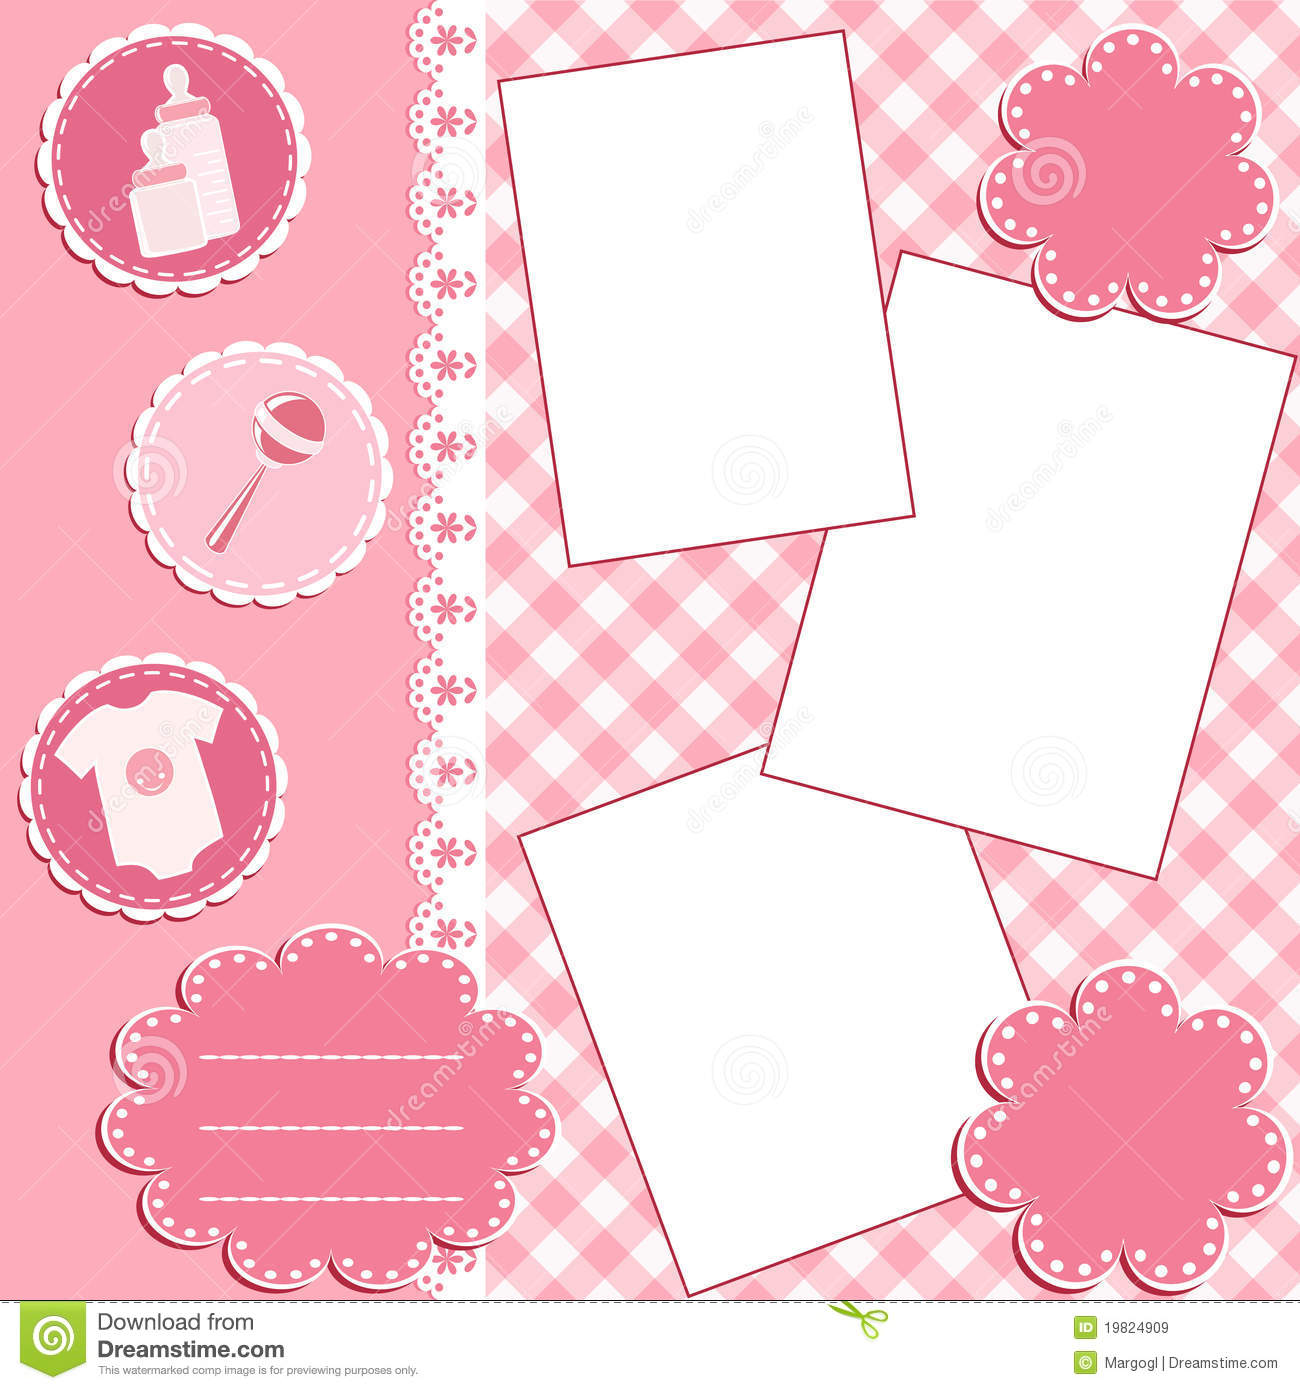 Baby Girl Shower Invitation with good invitations example